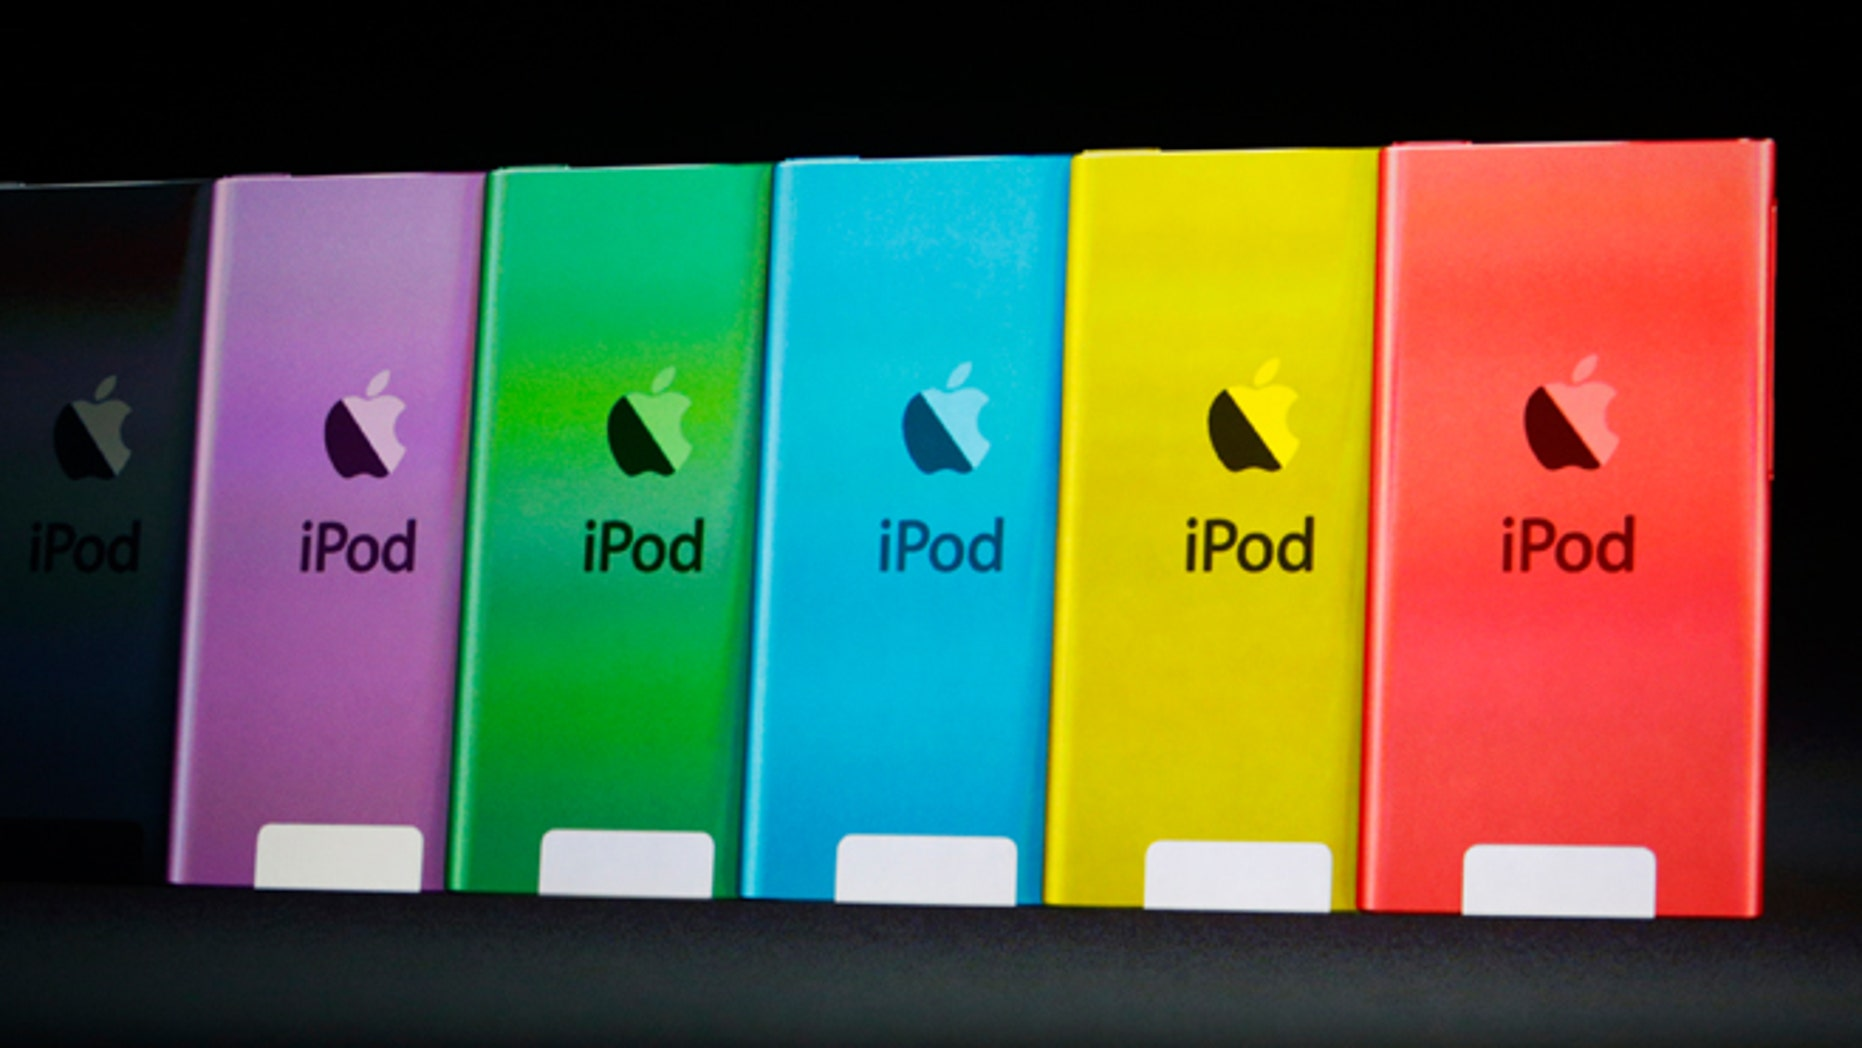 Nonprofit Music & Memory is seeking donations of devices like the iPod Touch, shown here. (REUTERS/Beck Diefenbach)